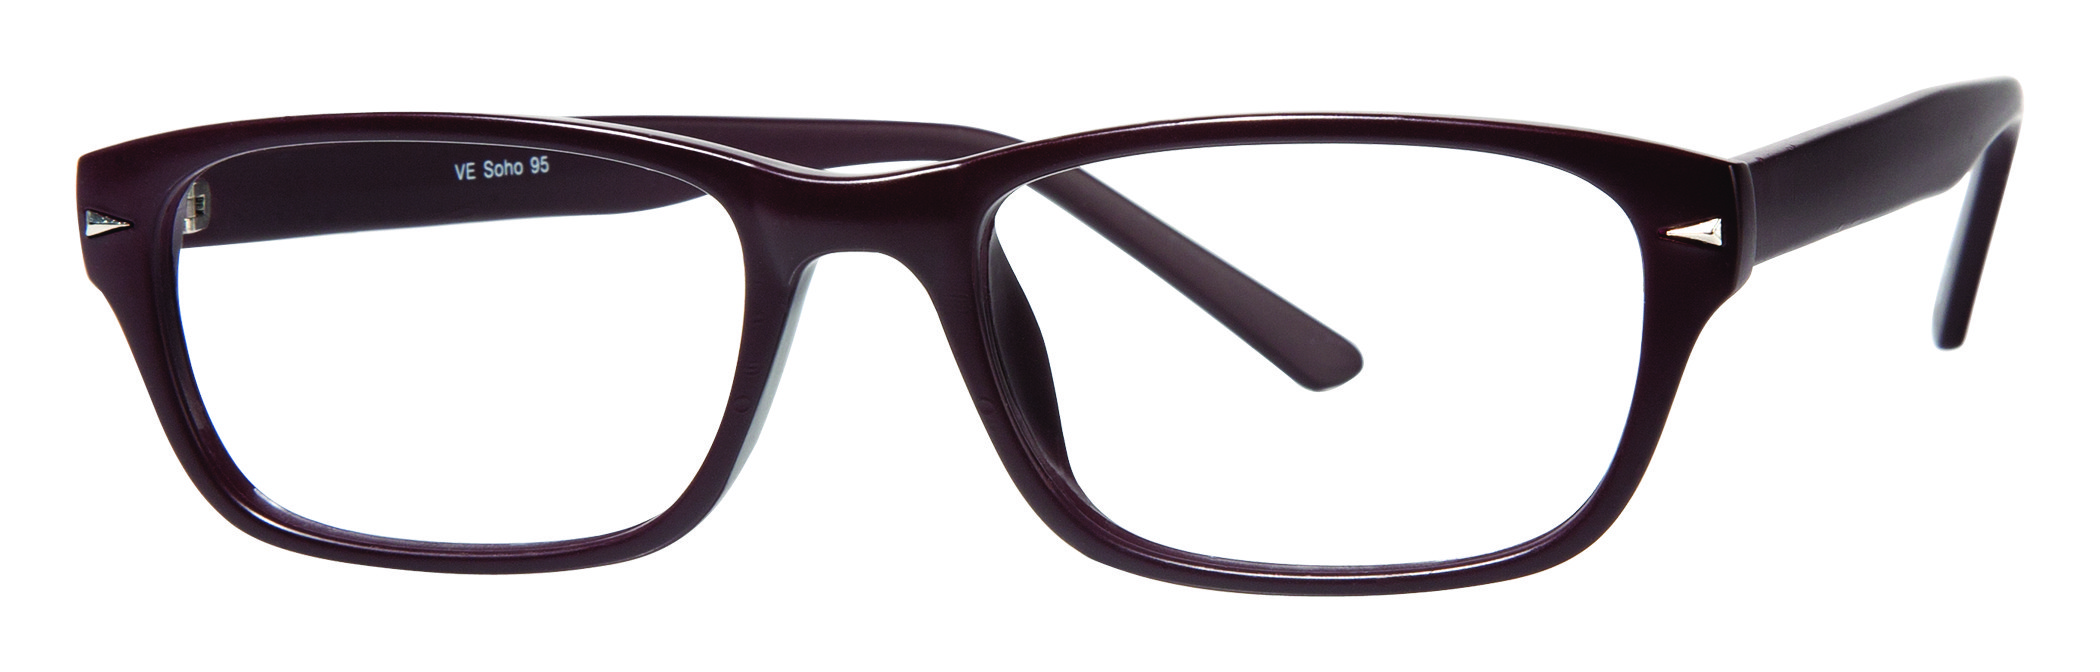 Vivid Eyewear -Soho 95 Eyeglasses Replacement Lens Express